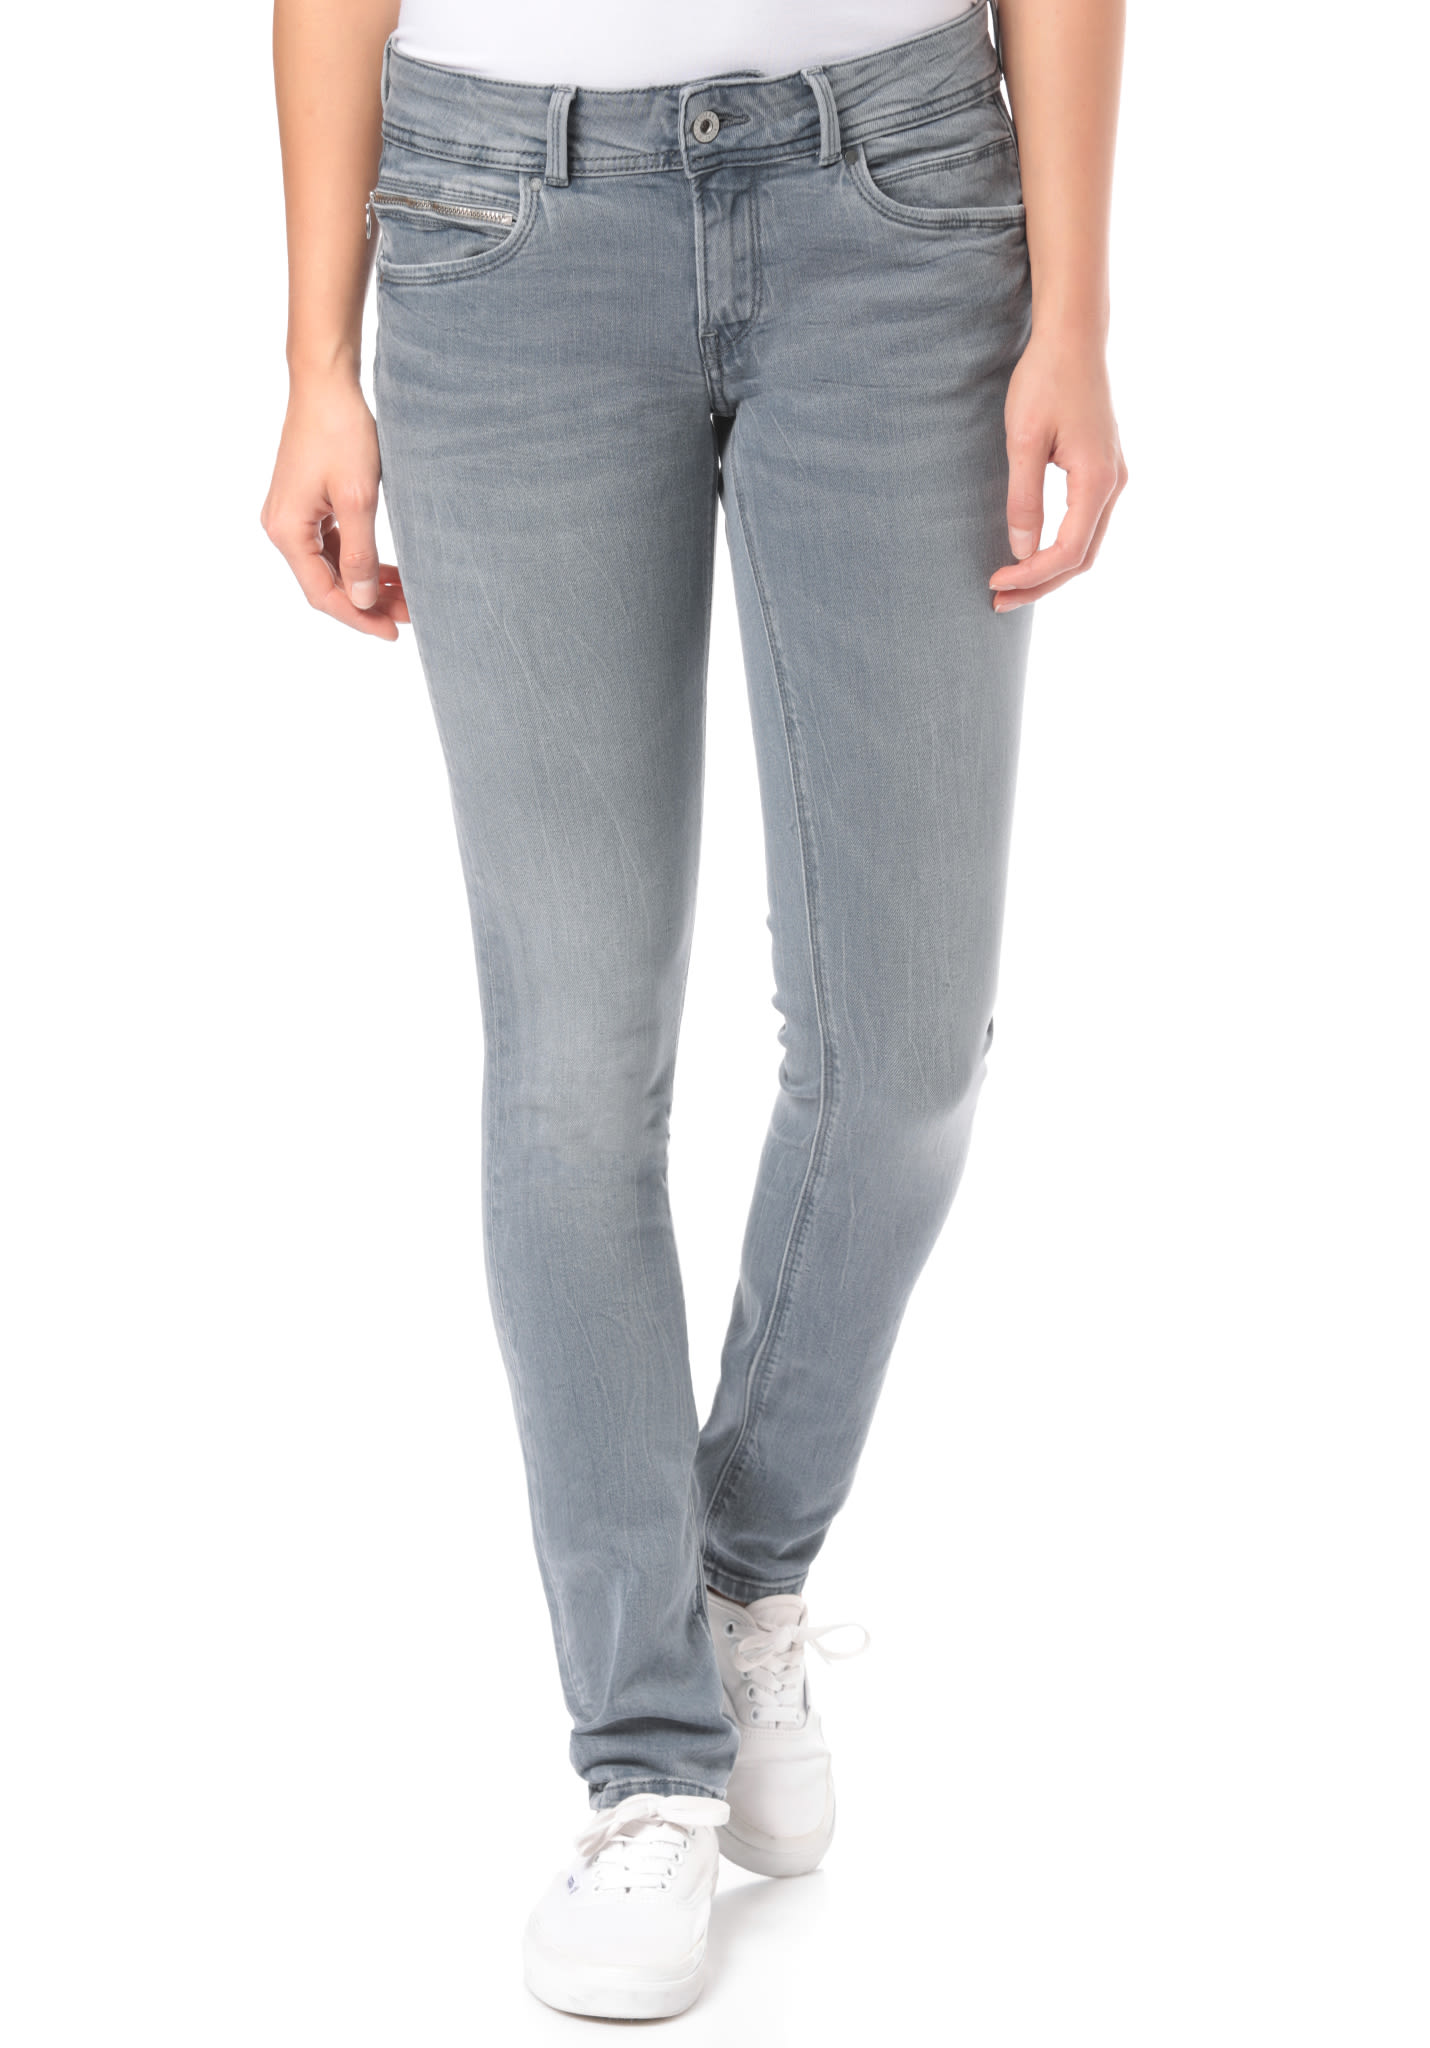 Jeans New Para Mujeres Gris Pepe Vaqueros Brooke nvw8mN0